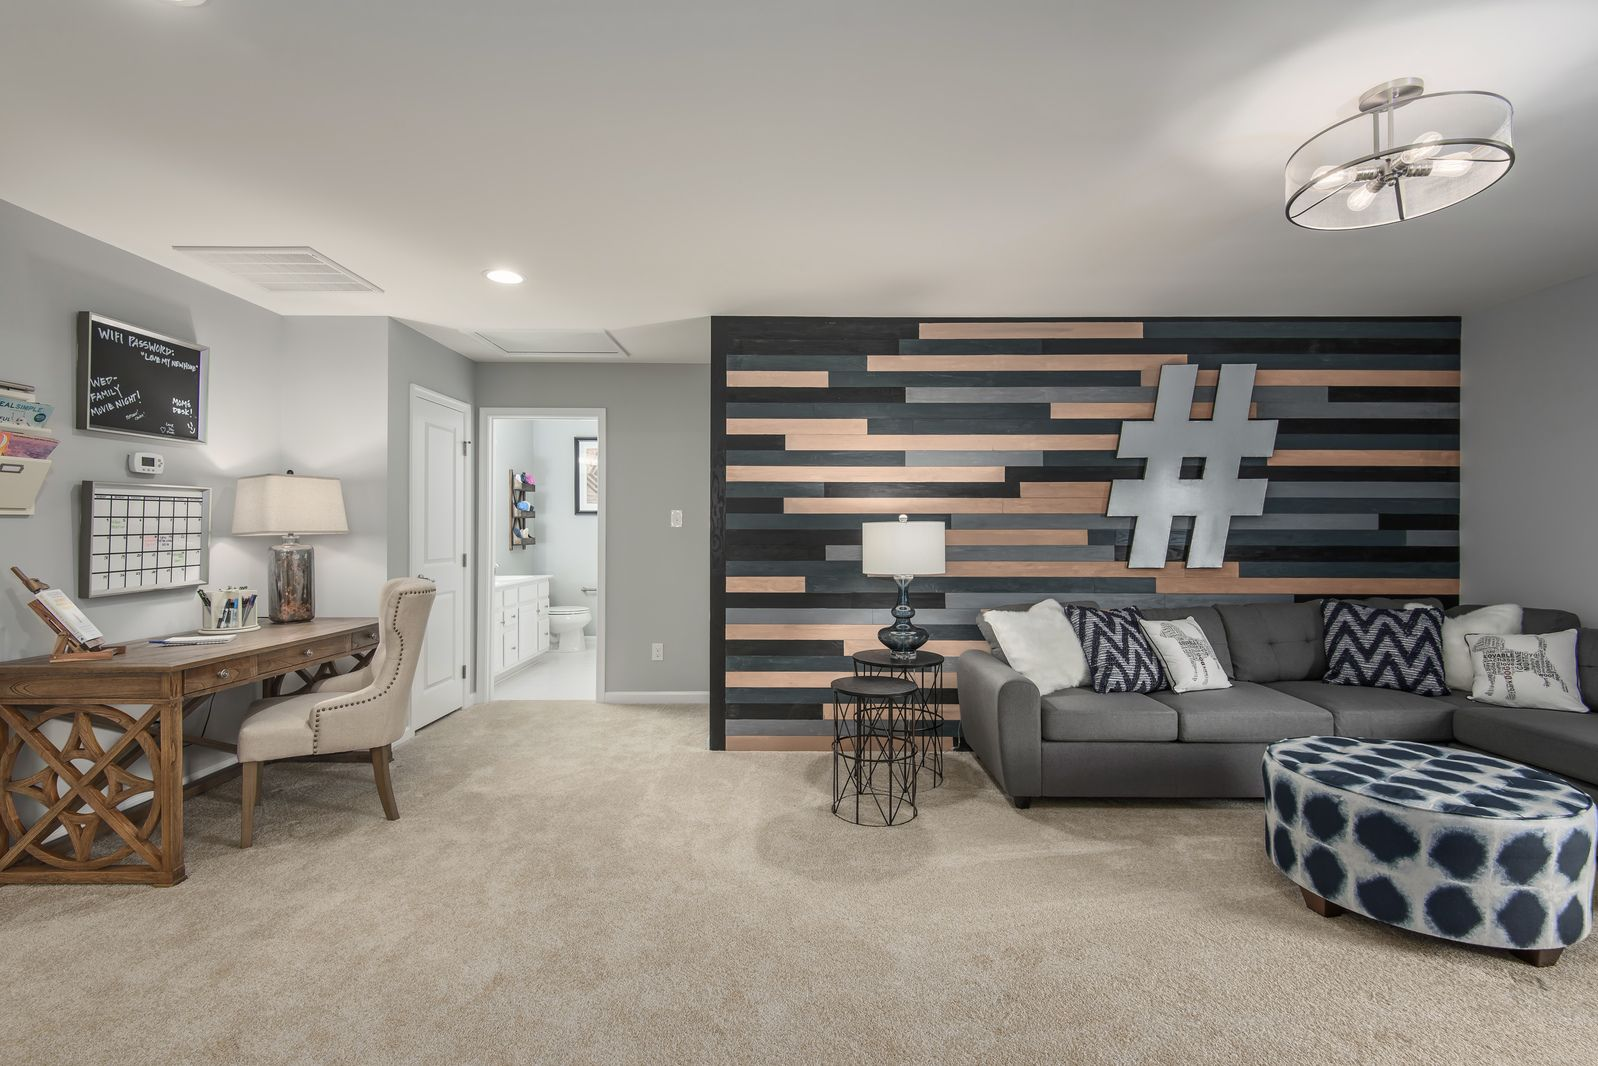 Living Area featured in the Genoa By HeartlandHomes in Morgantown, WV